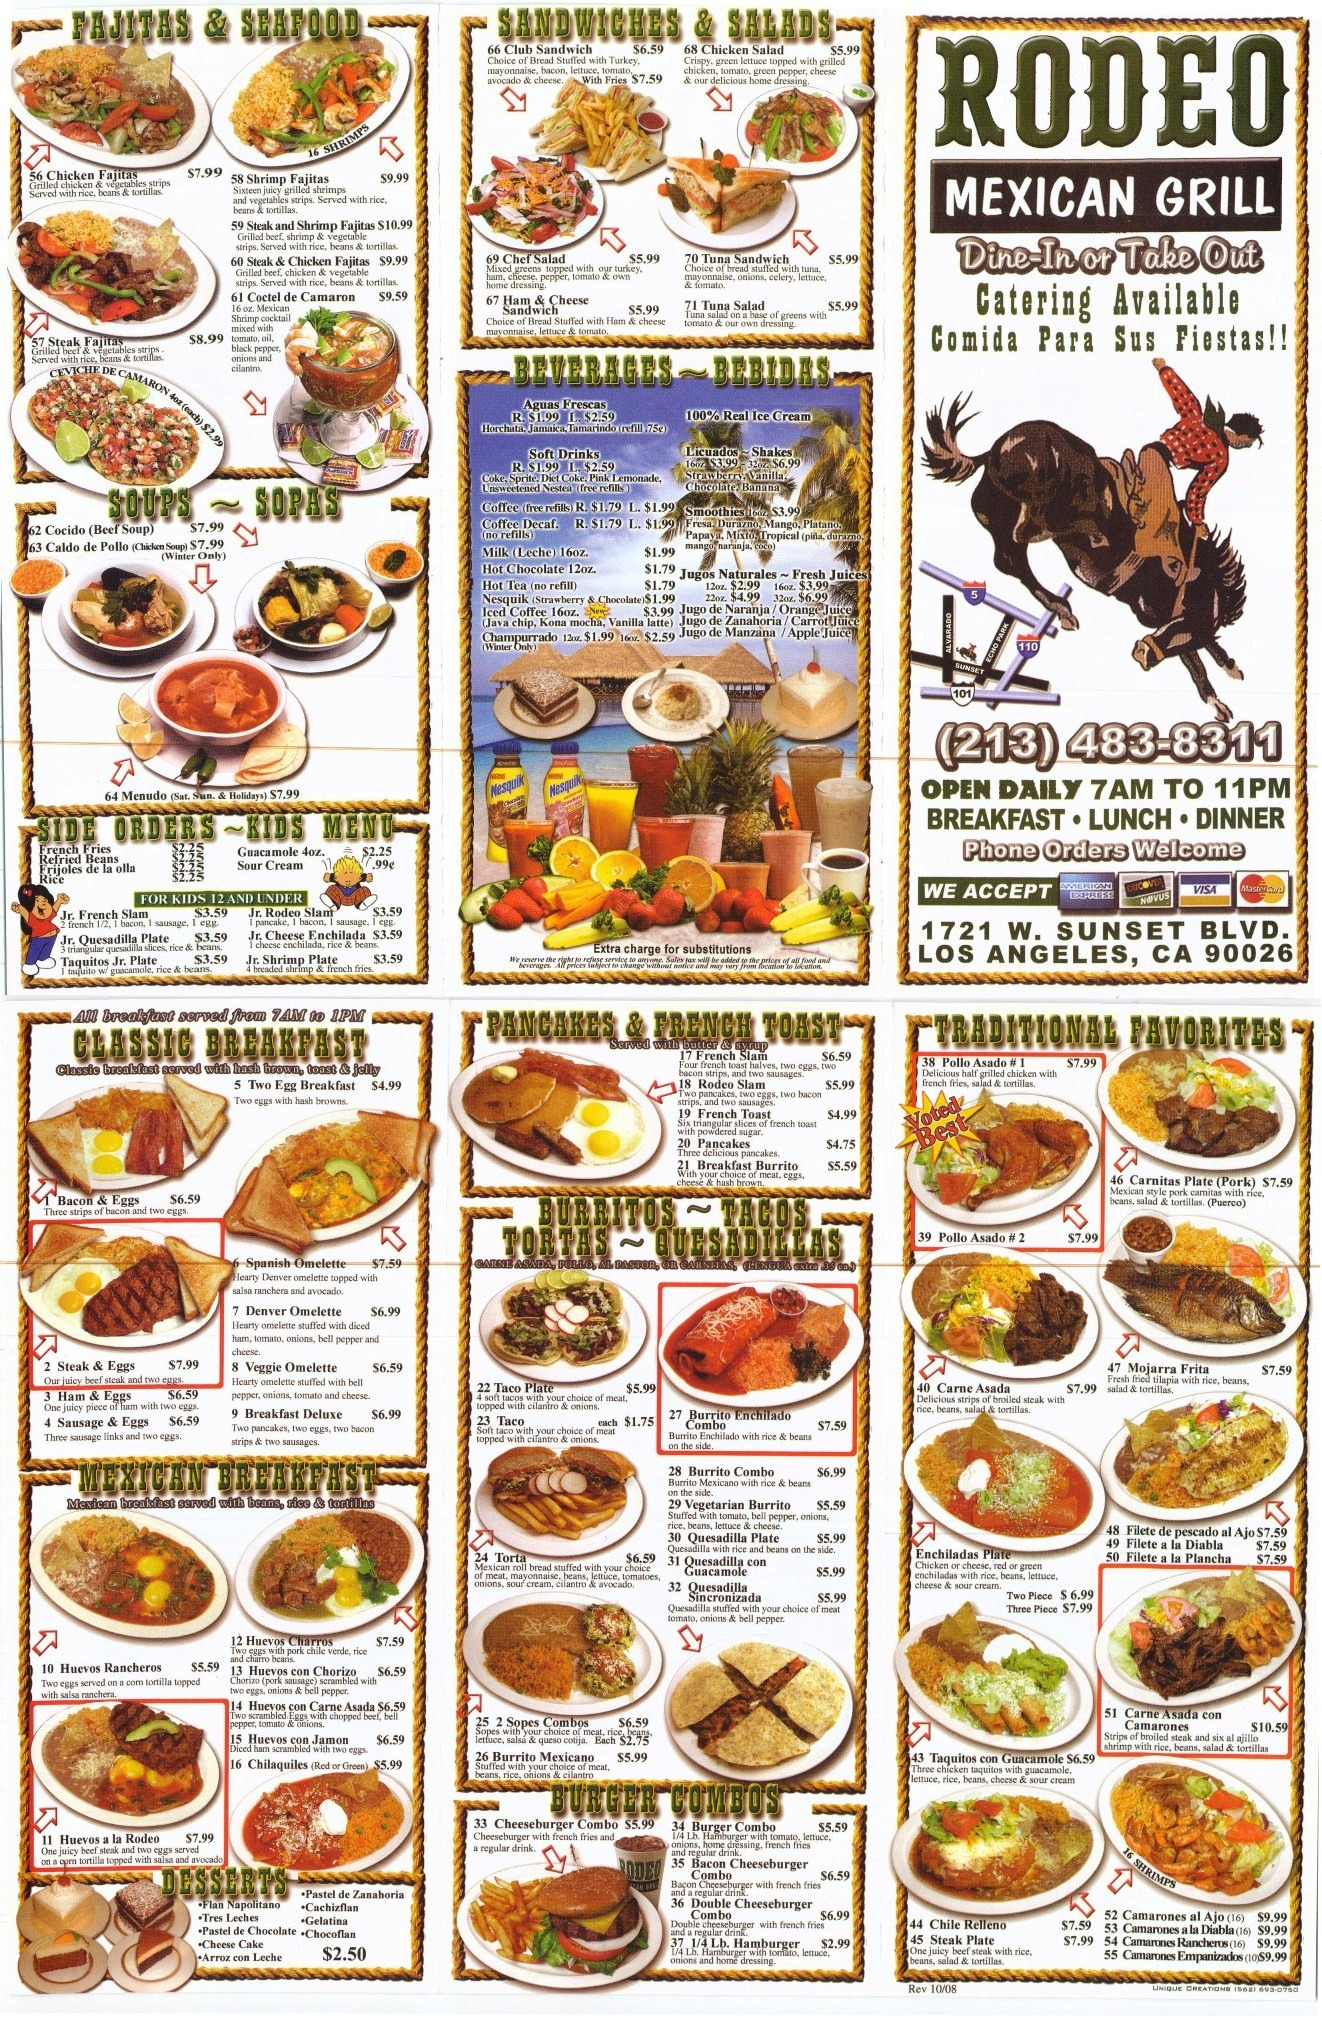 Rodeo Mexican Food Sunset